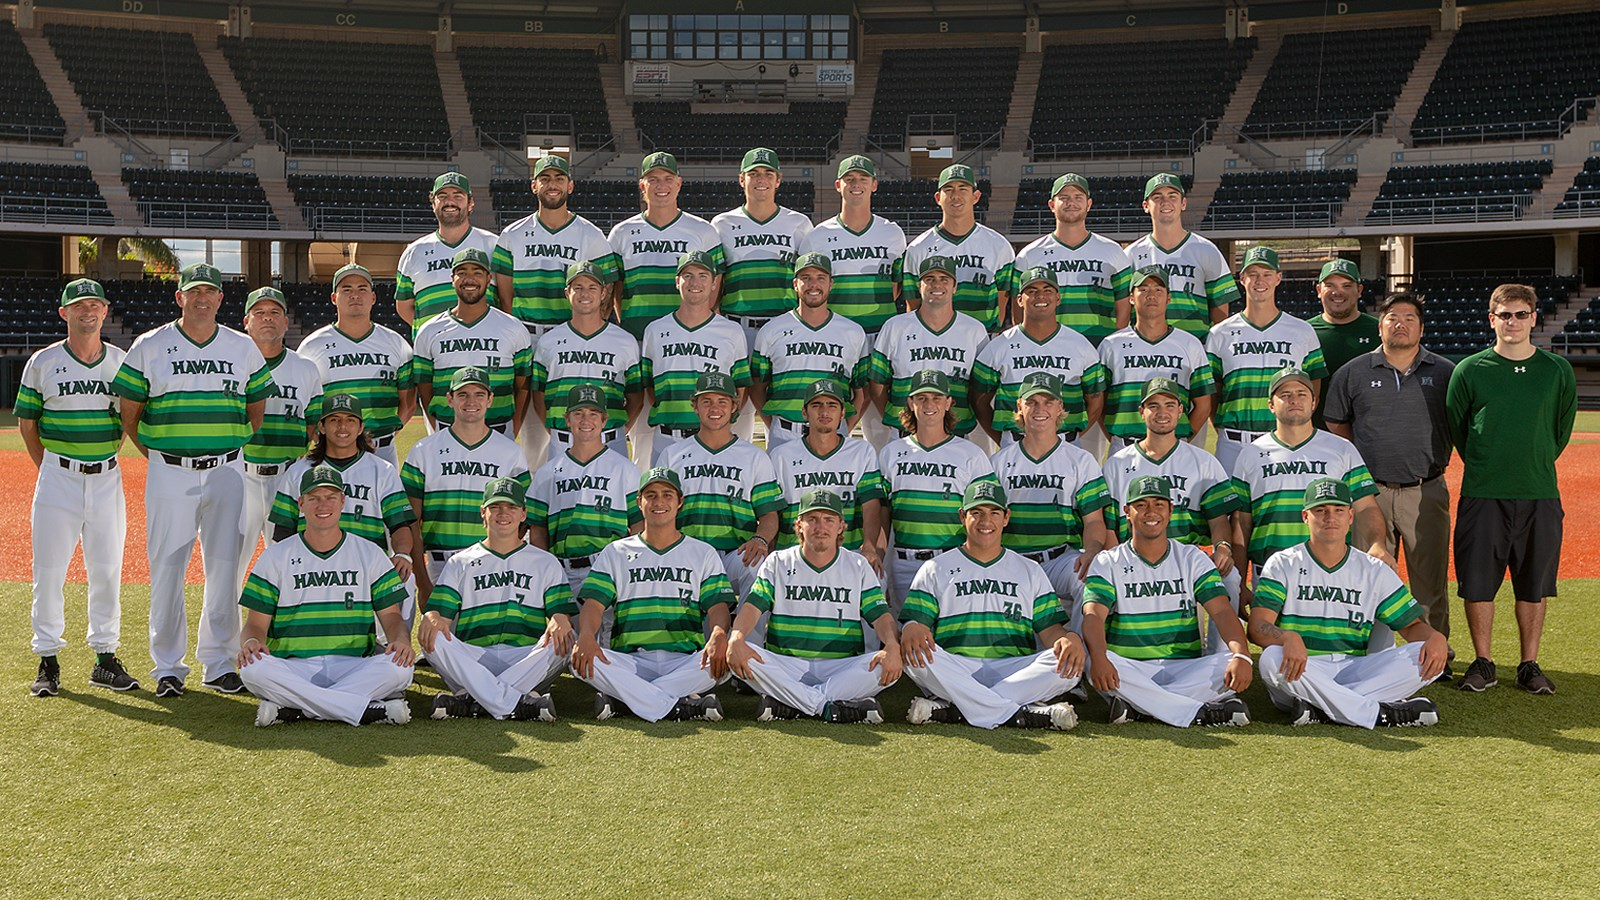 2019 Baseball Roster - University of Hawai'i at Manoa Athletics